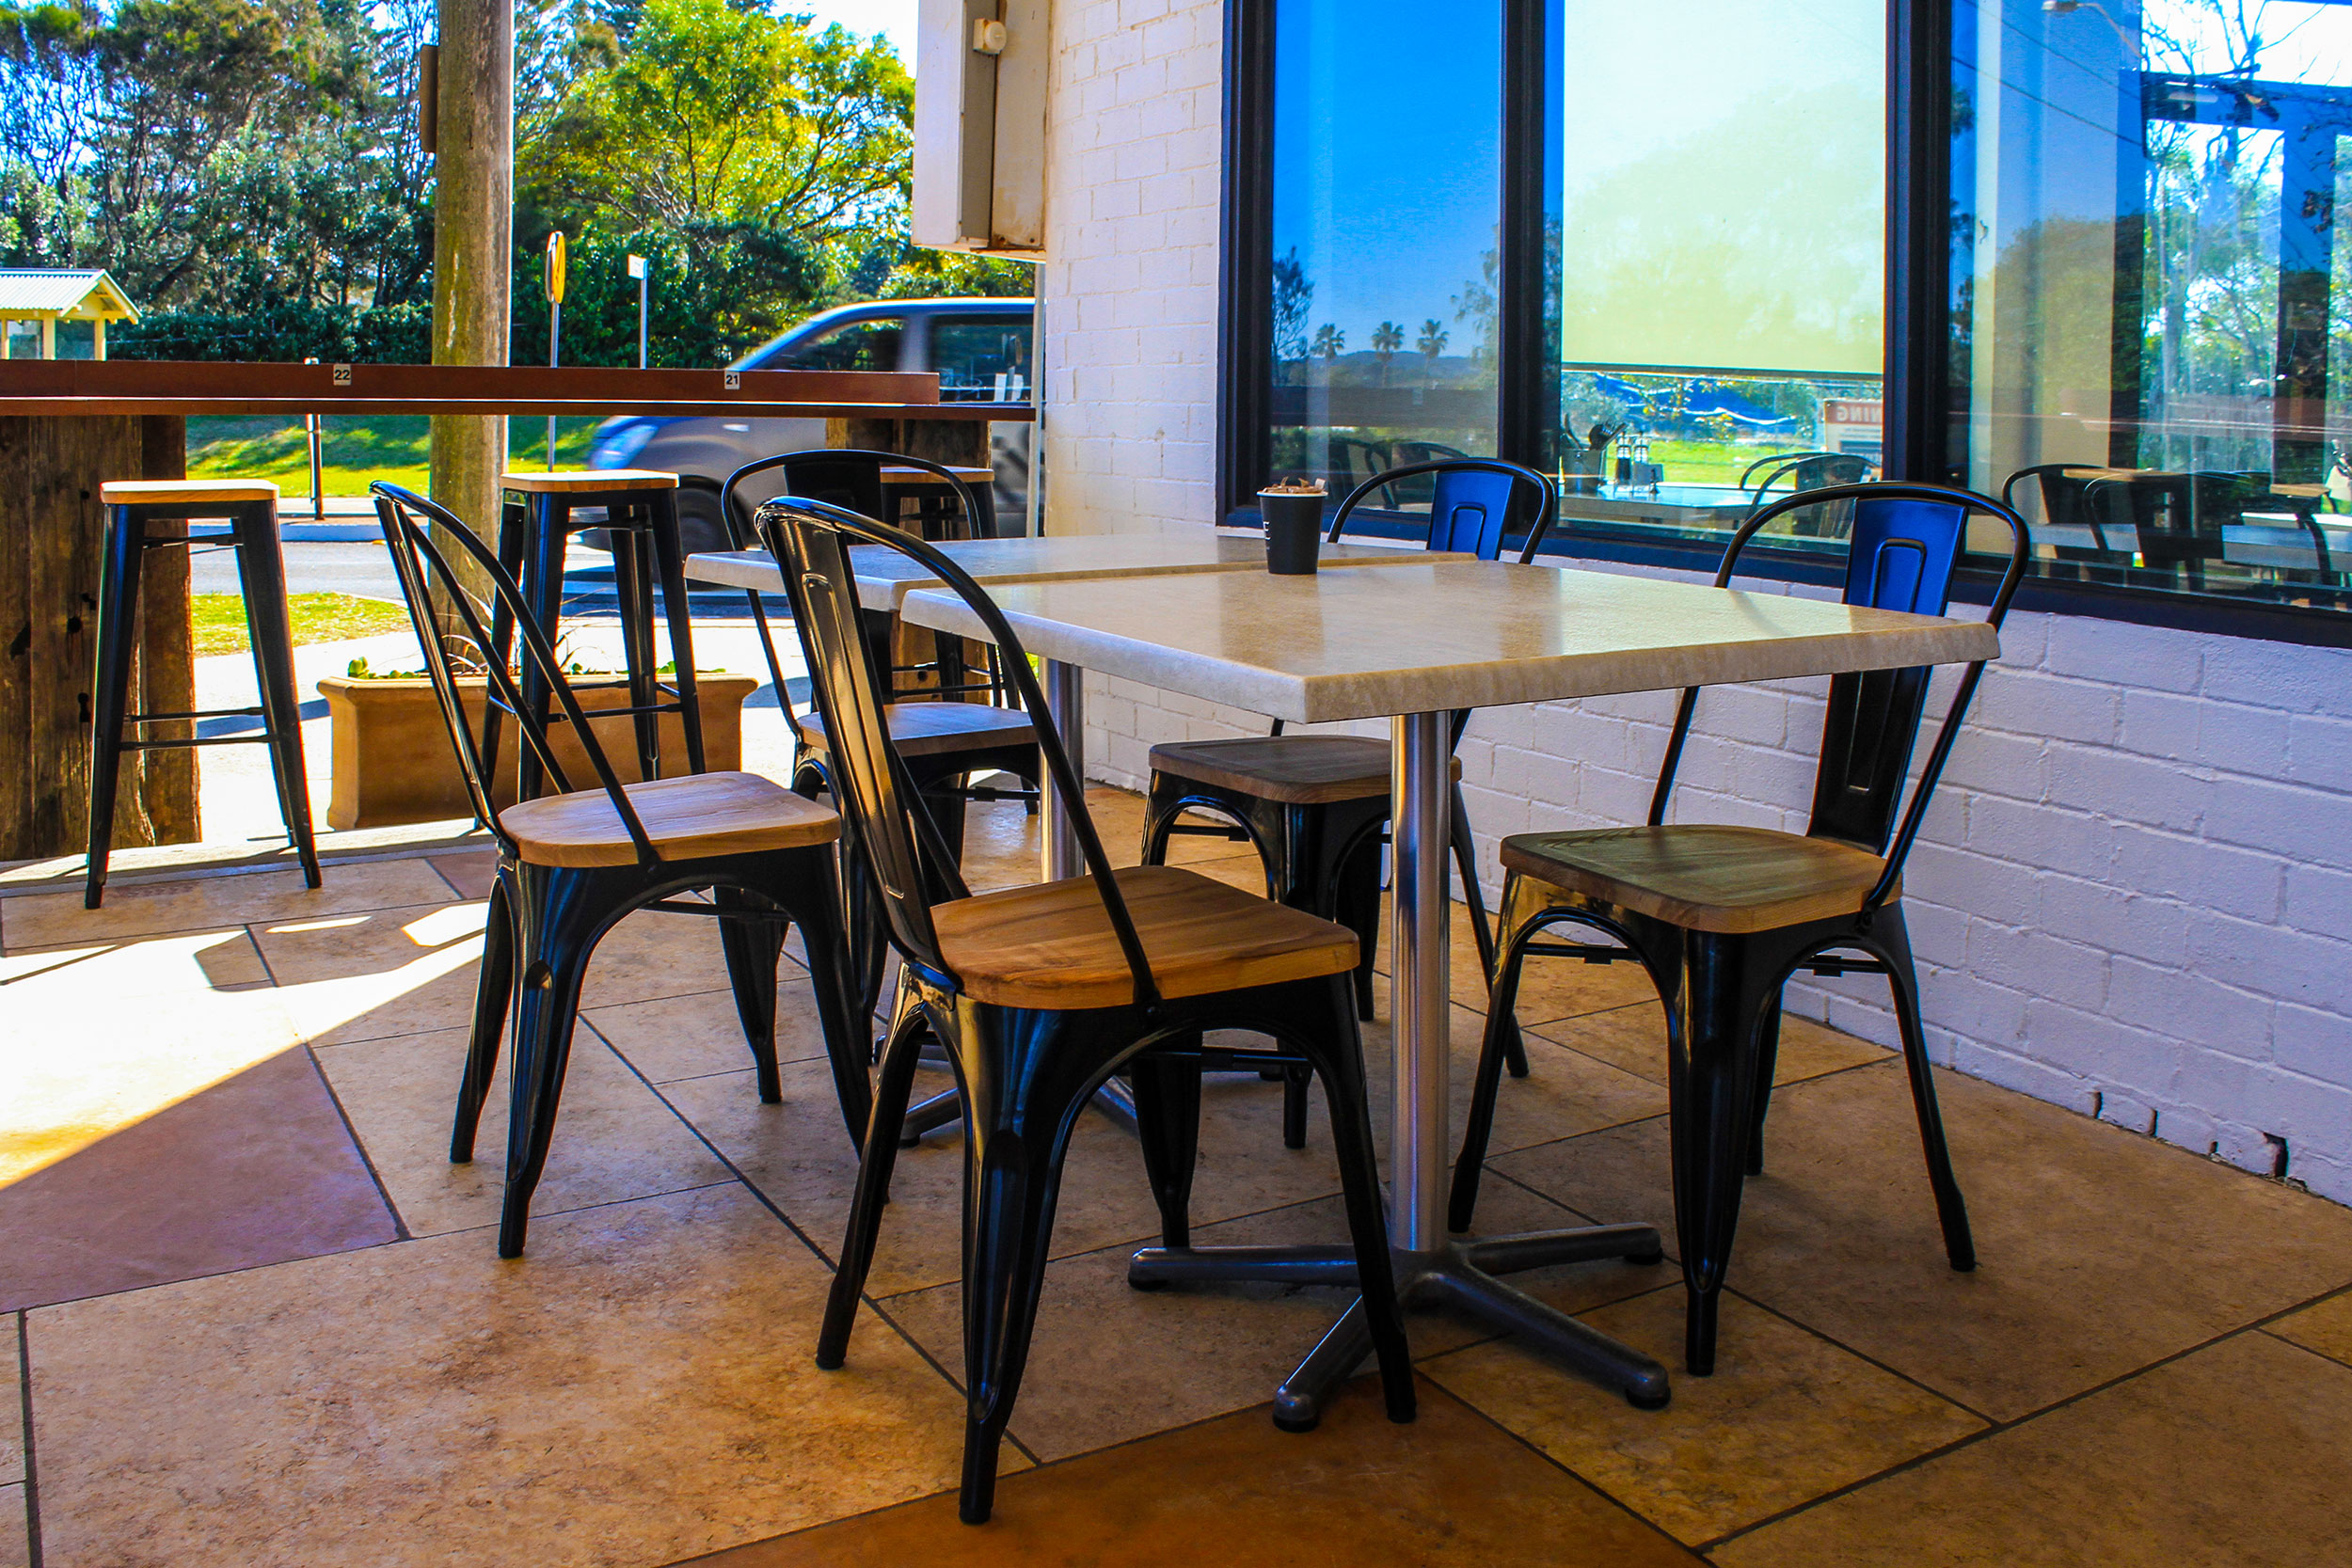 Name : One Cafe Restaurant - Narrabeen